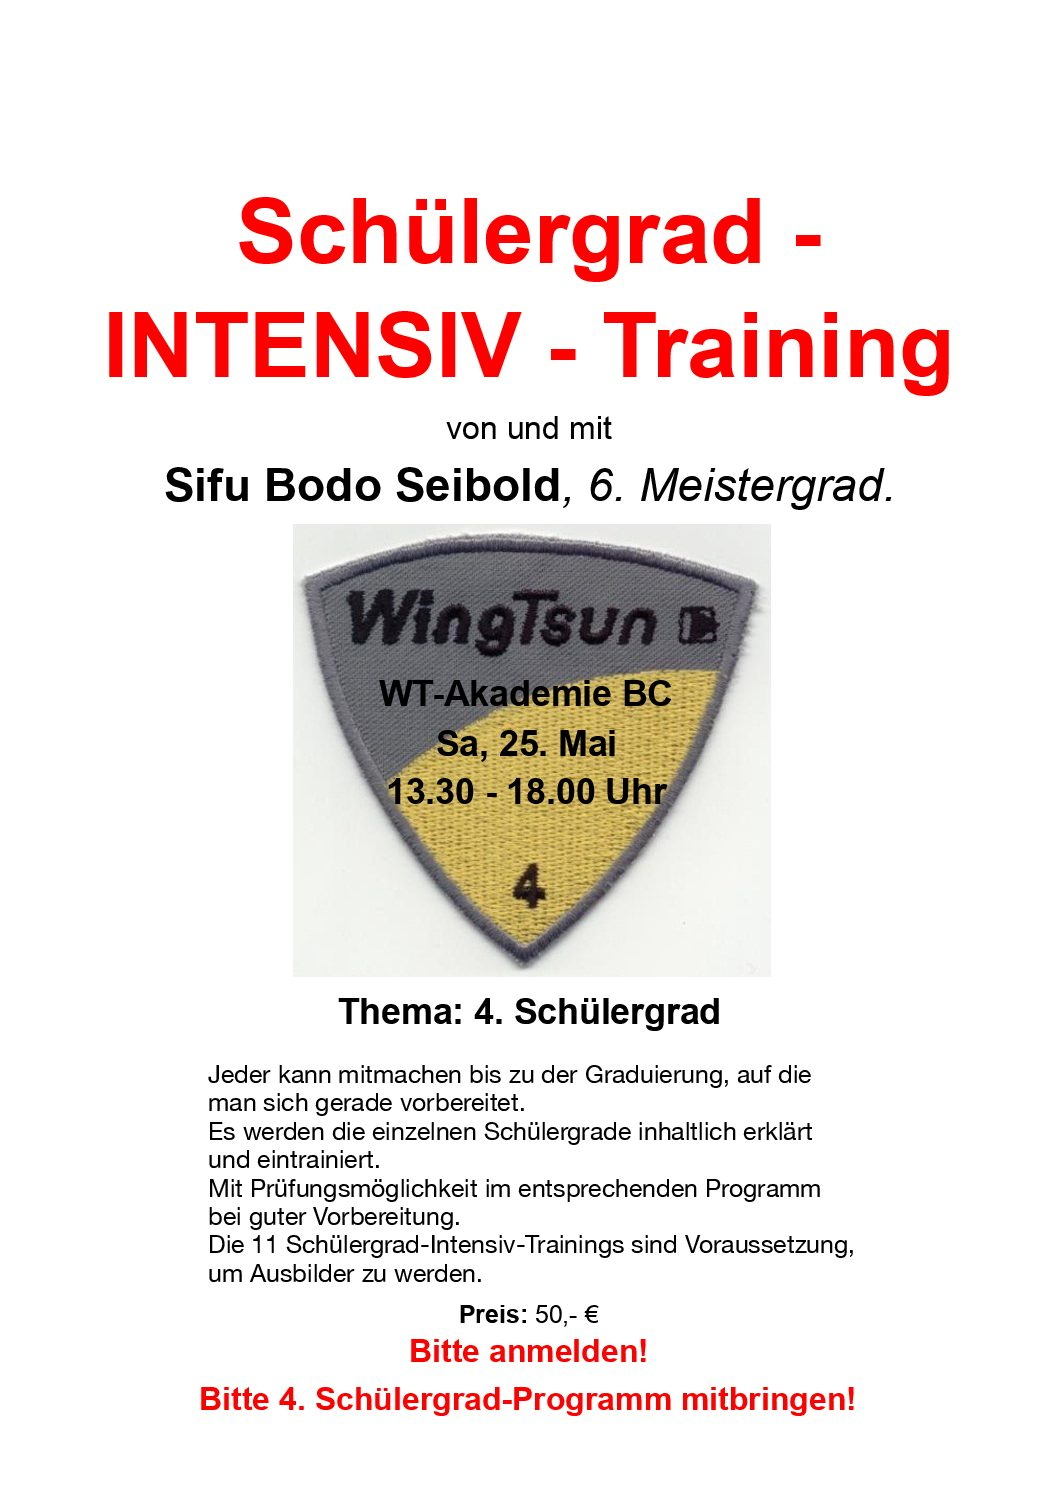 Schülergrad – Intensiv – Training